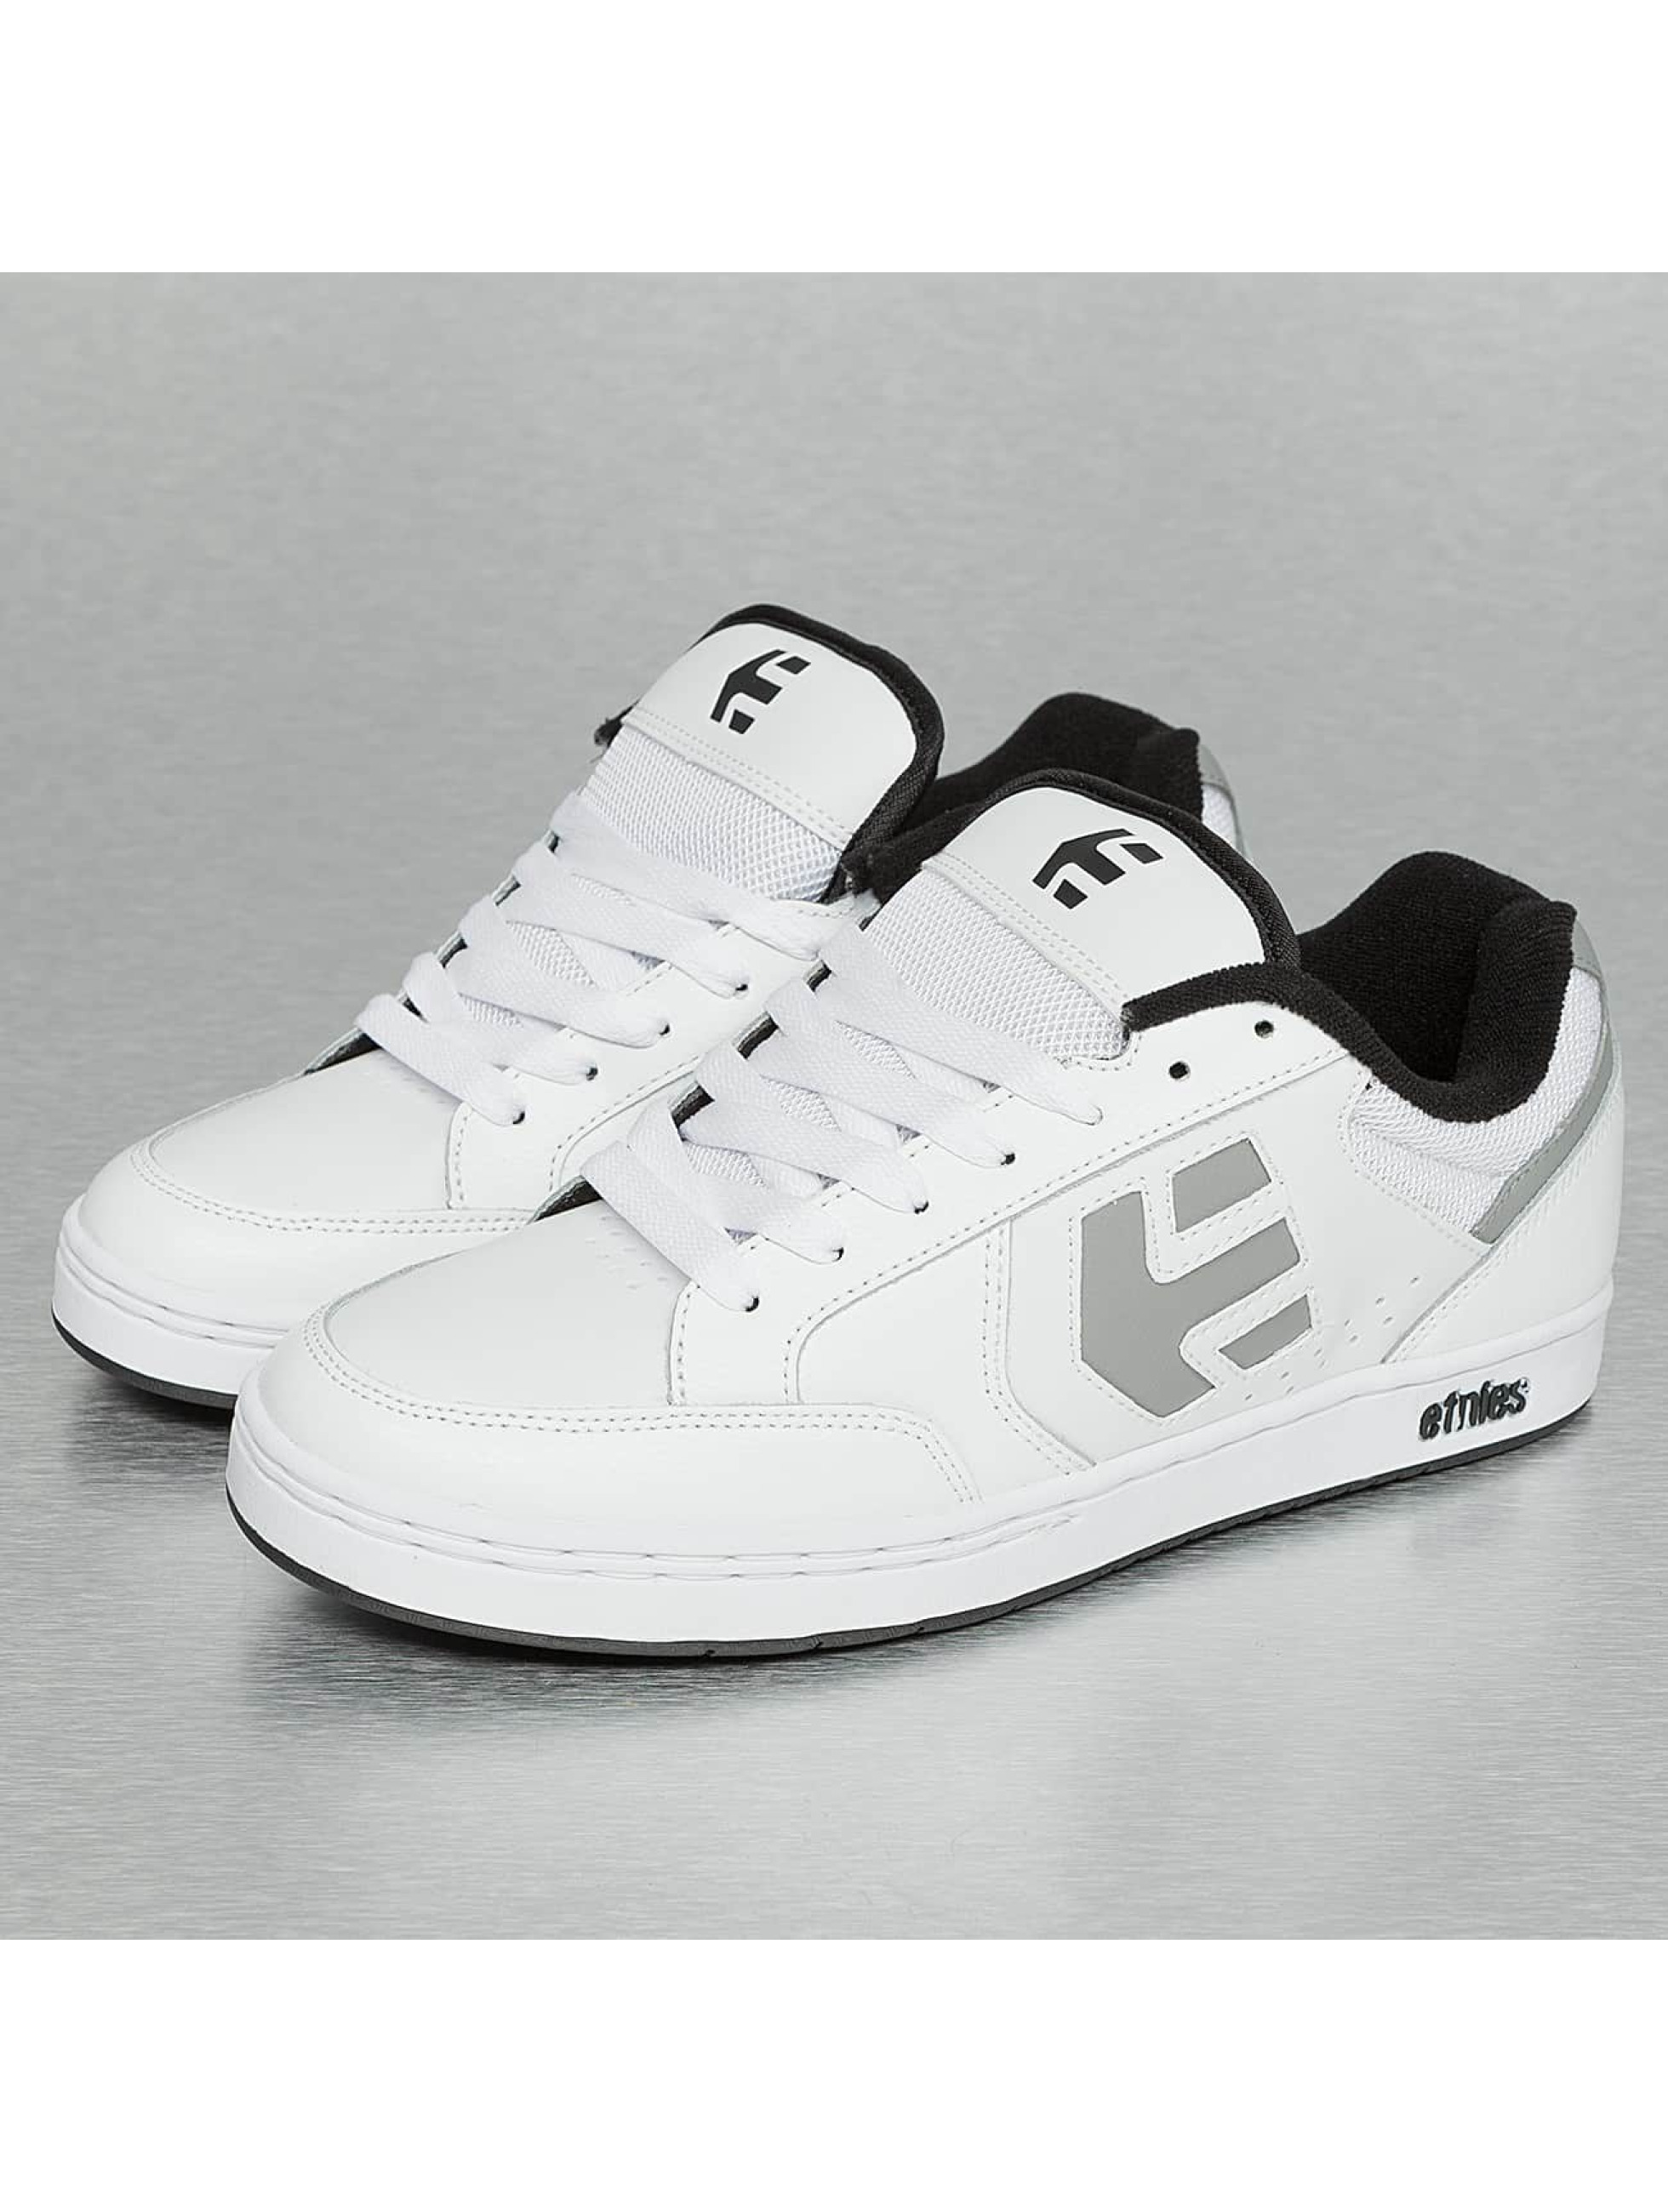 Etnies Swivel Sneakers White/Grey/Black